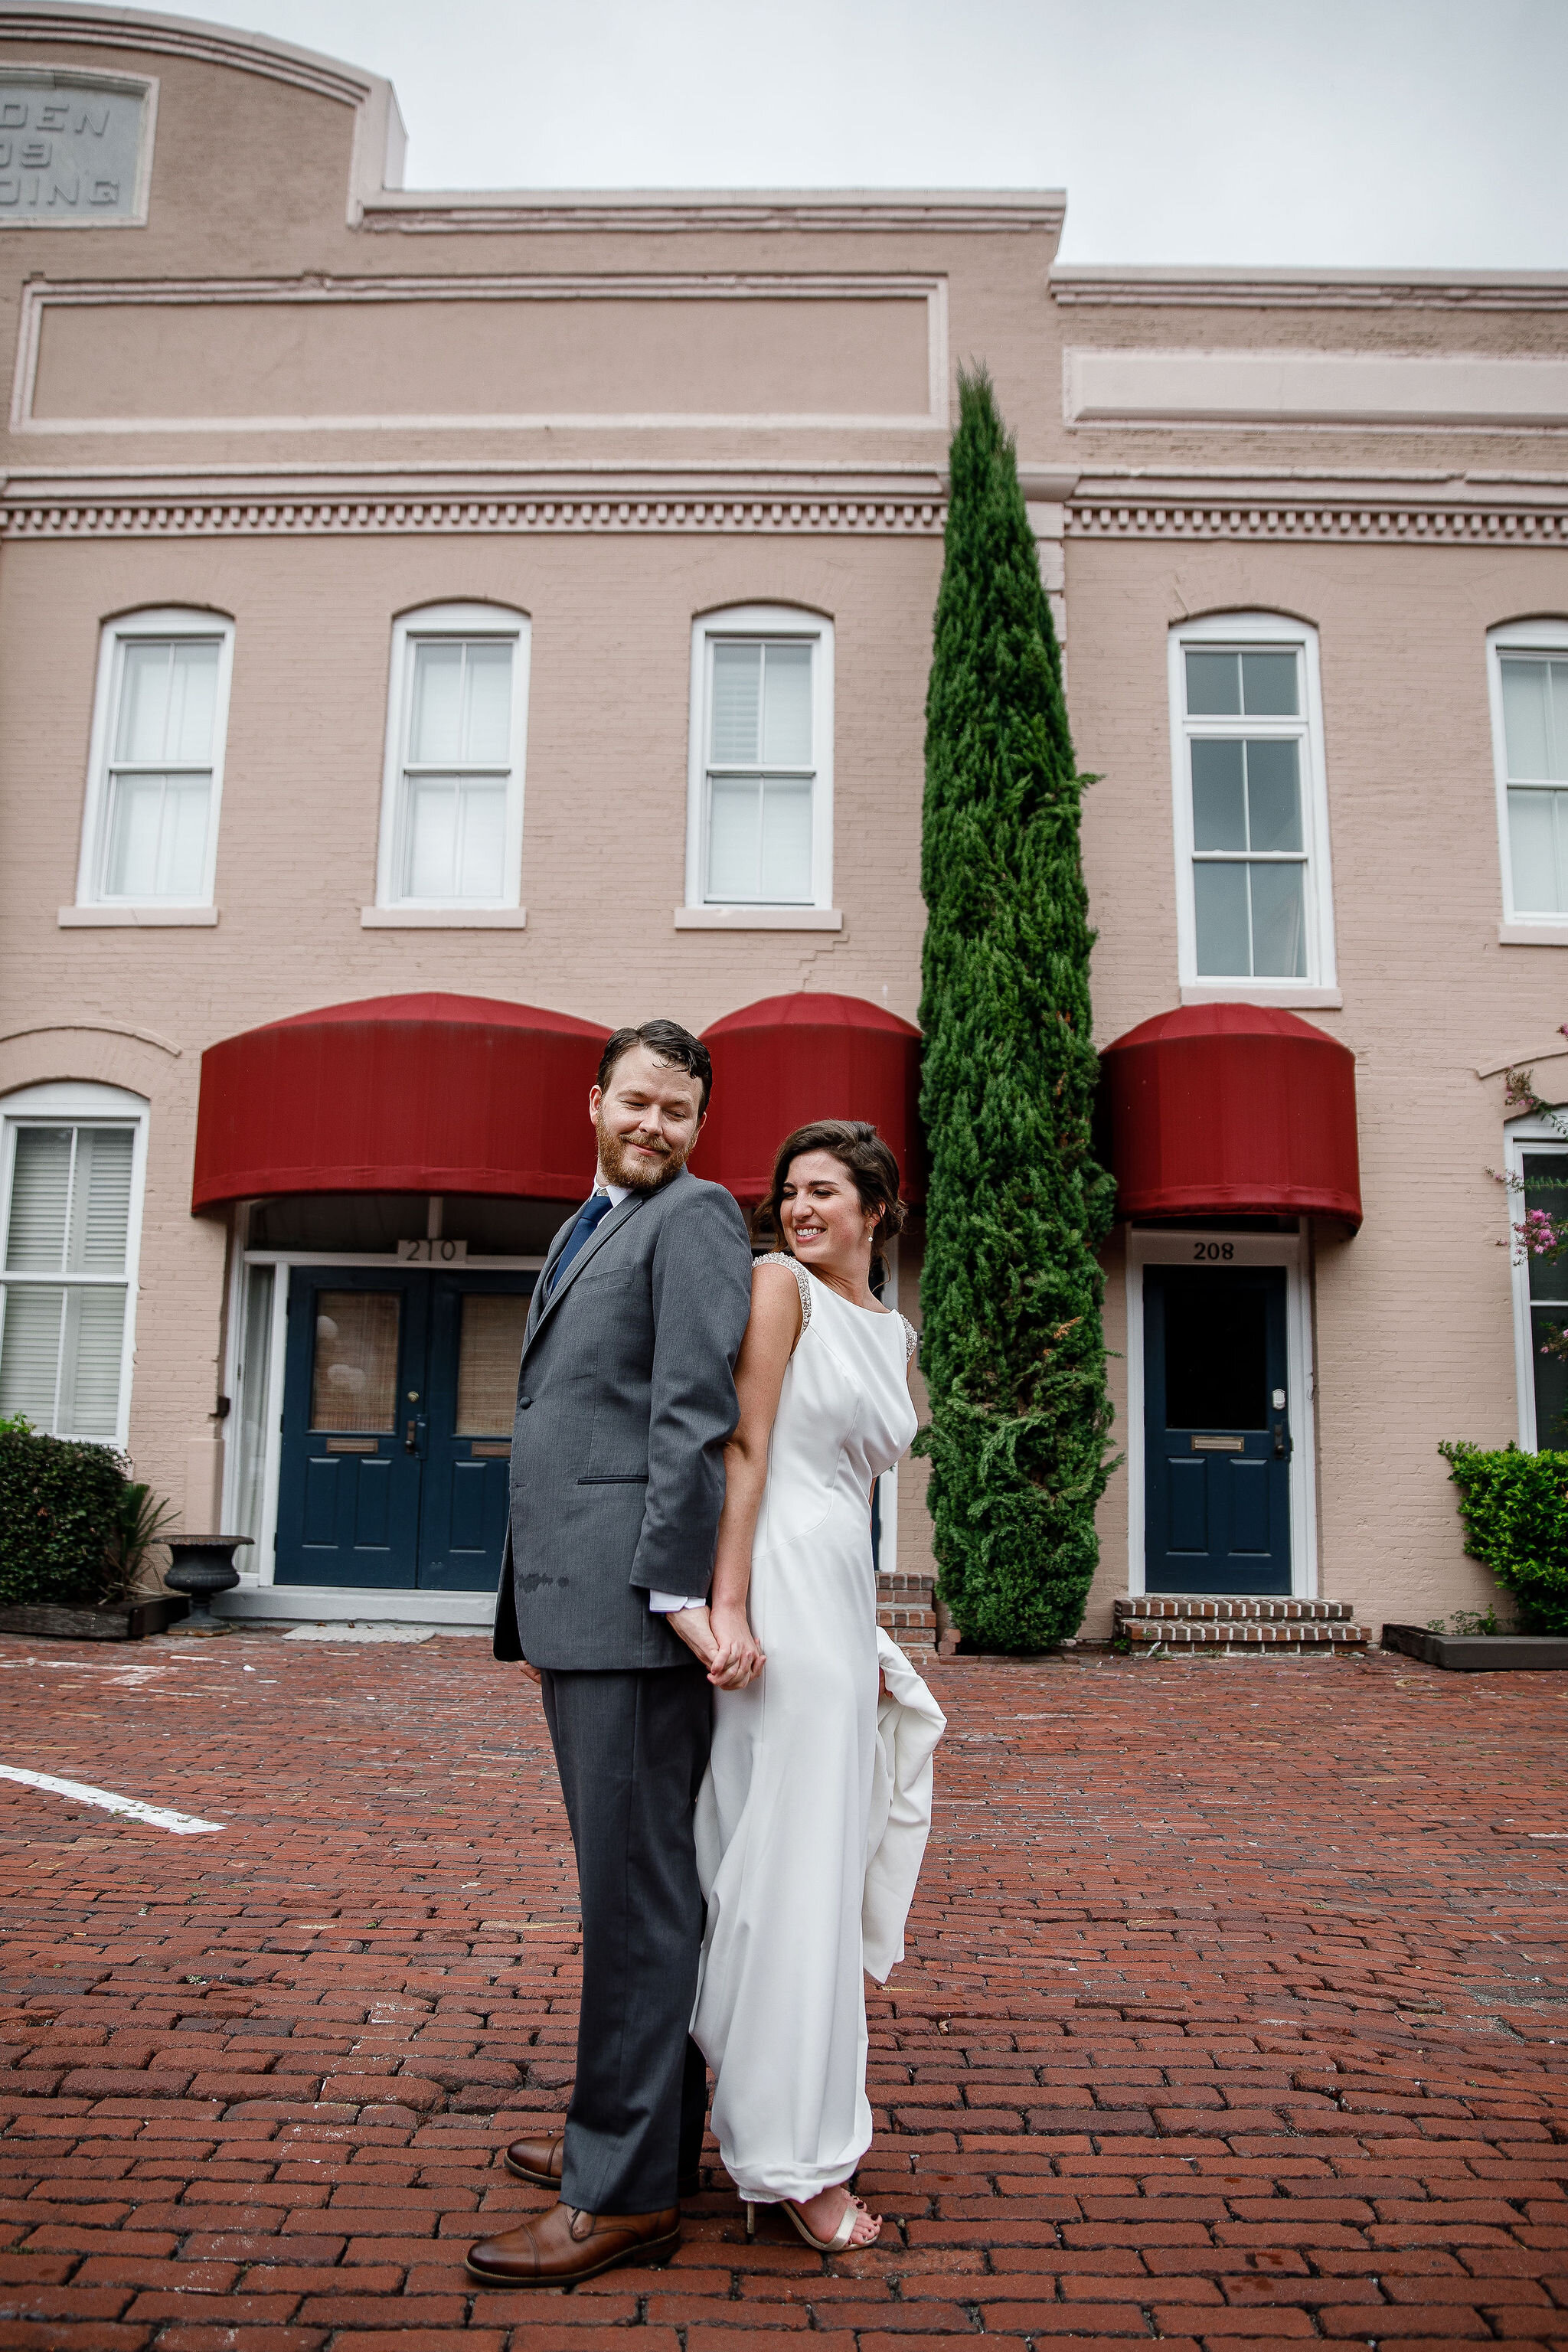 ivory-and-beau-blog-couple-and-florals-shannon-and-mike-wedding-savannah-wedding-planner-savannah-florist-savannah-wedding-southern-florist-southern-wedding-alida-hotel-205.jpg